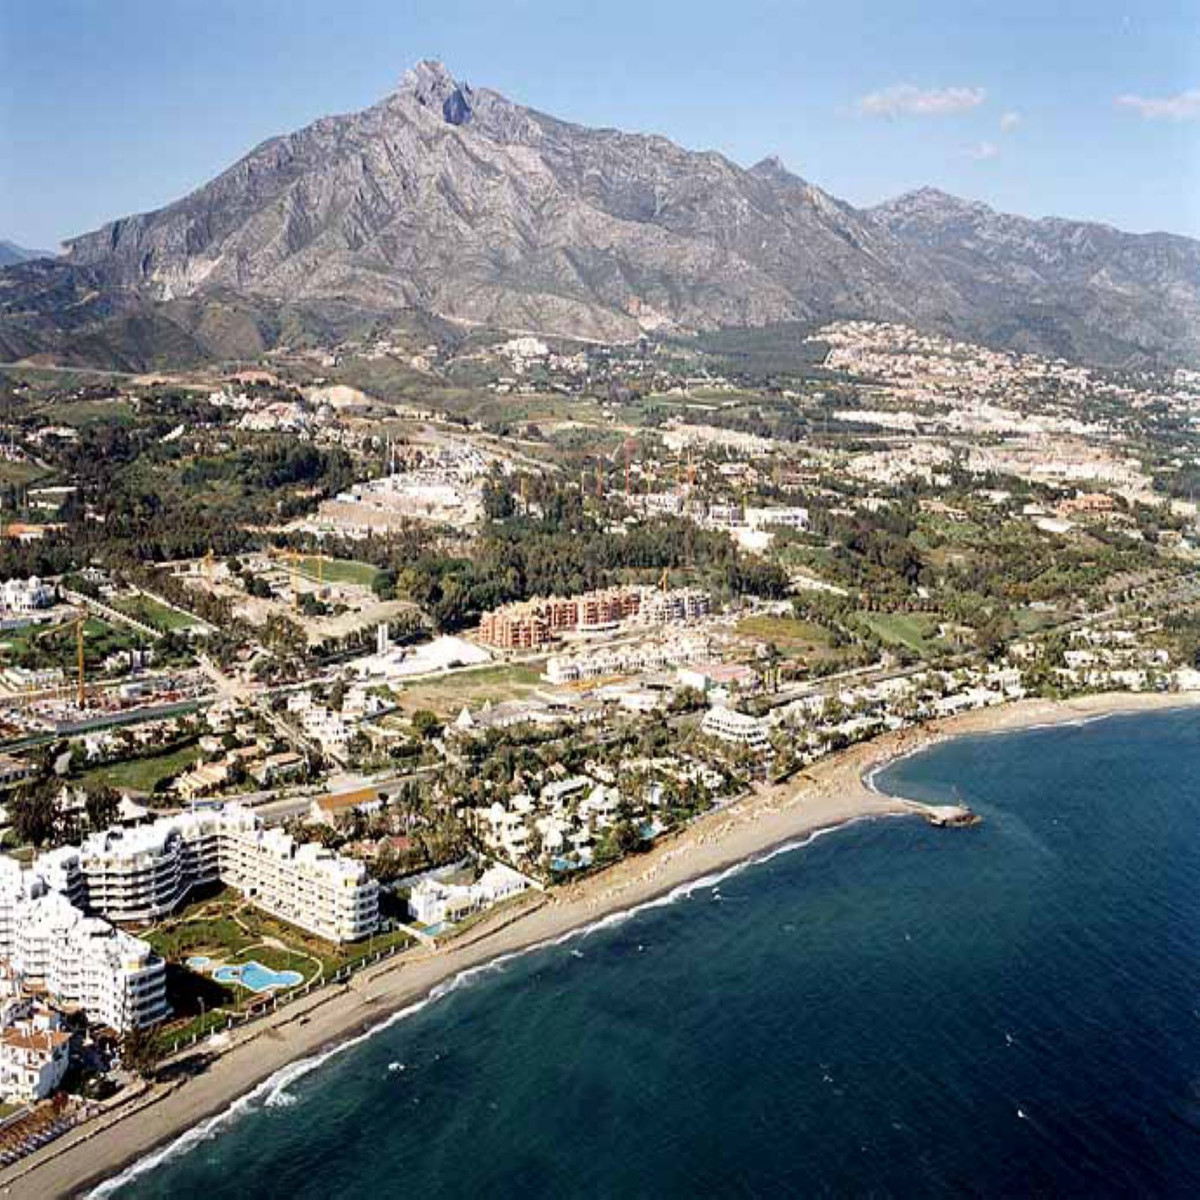 Plot building land 10,000 m2. First line beach in Marbella, segregated into 4 plots with project app, Spain